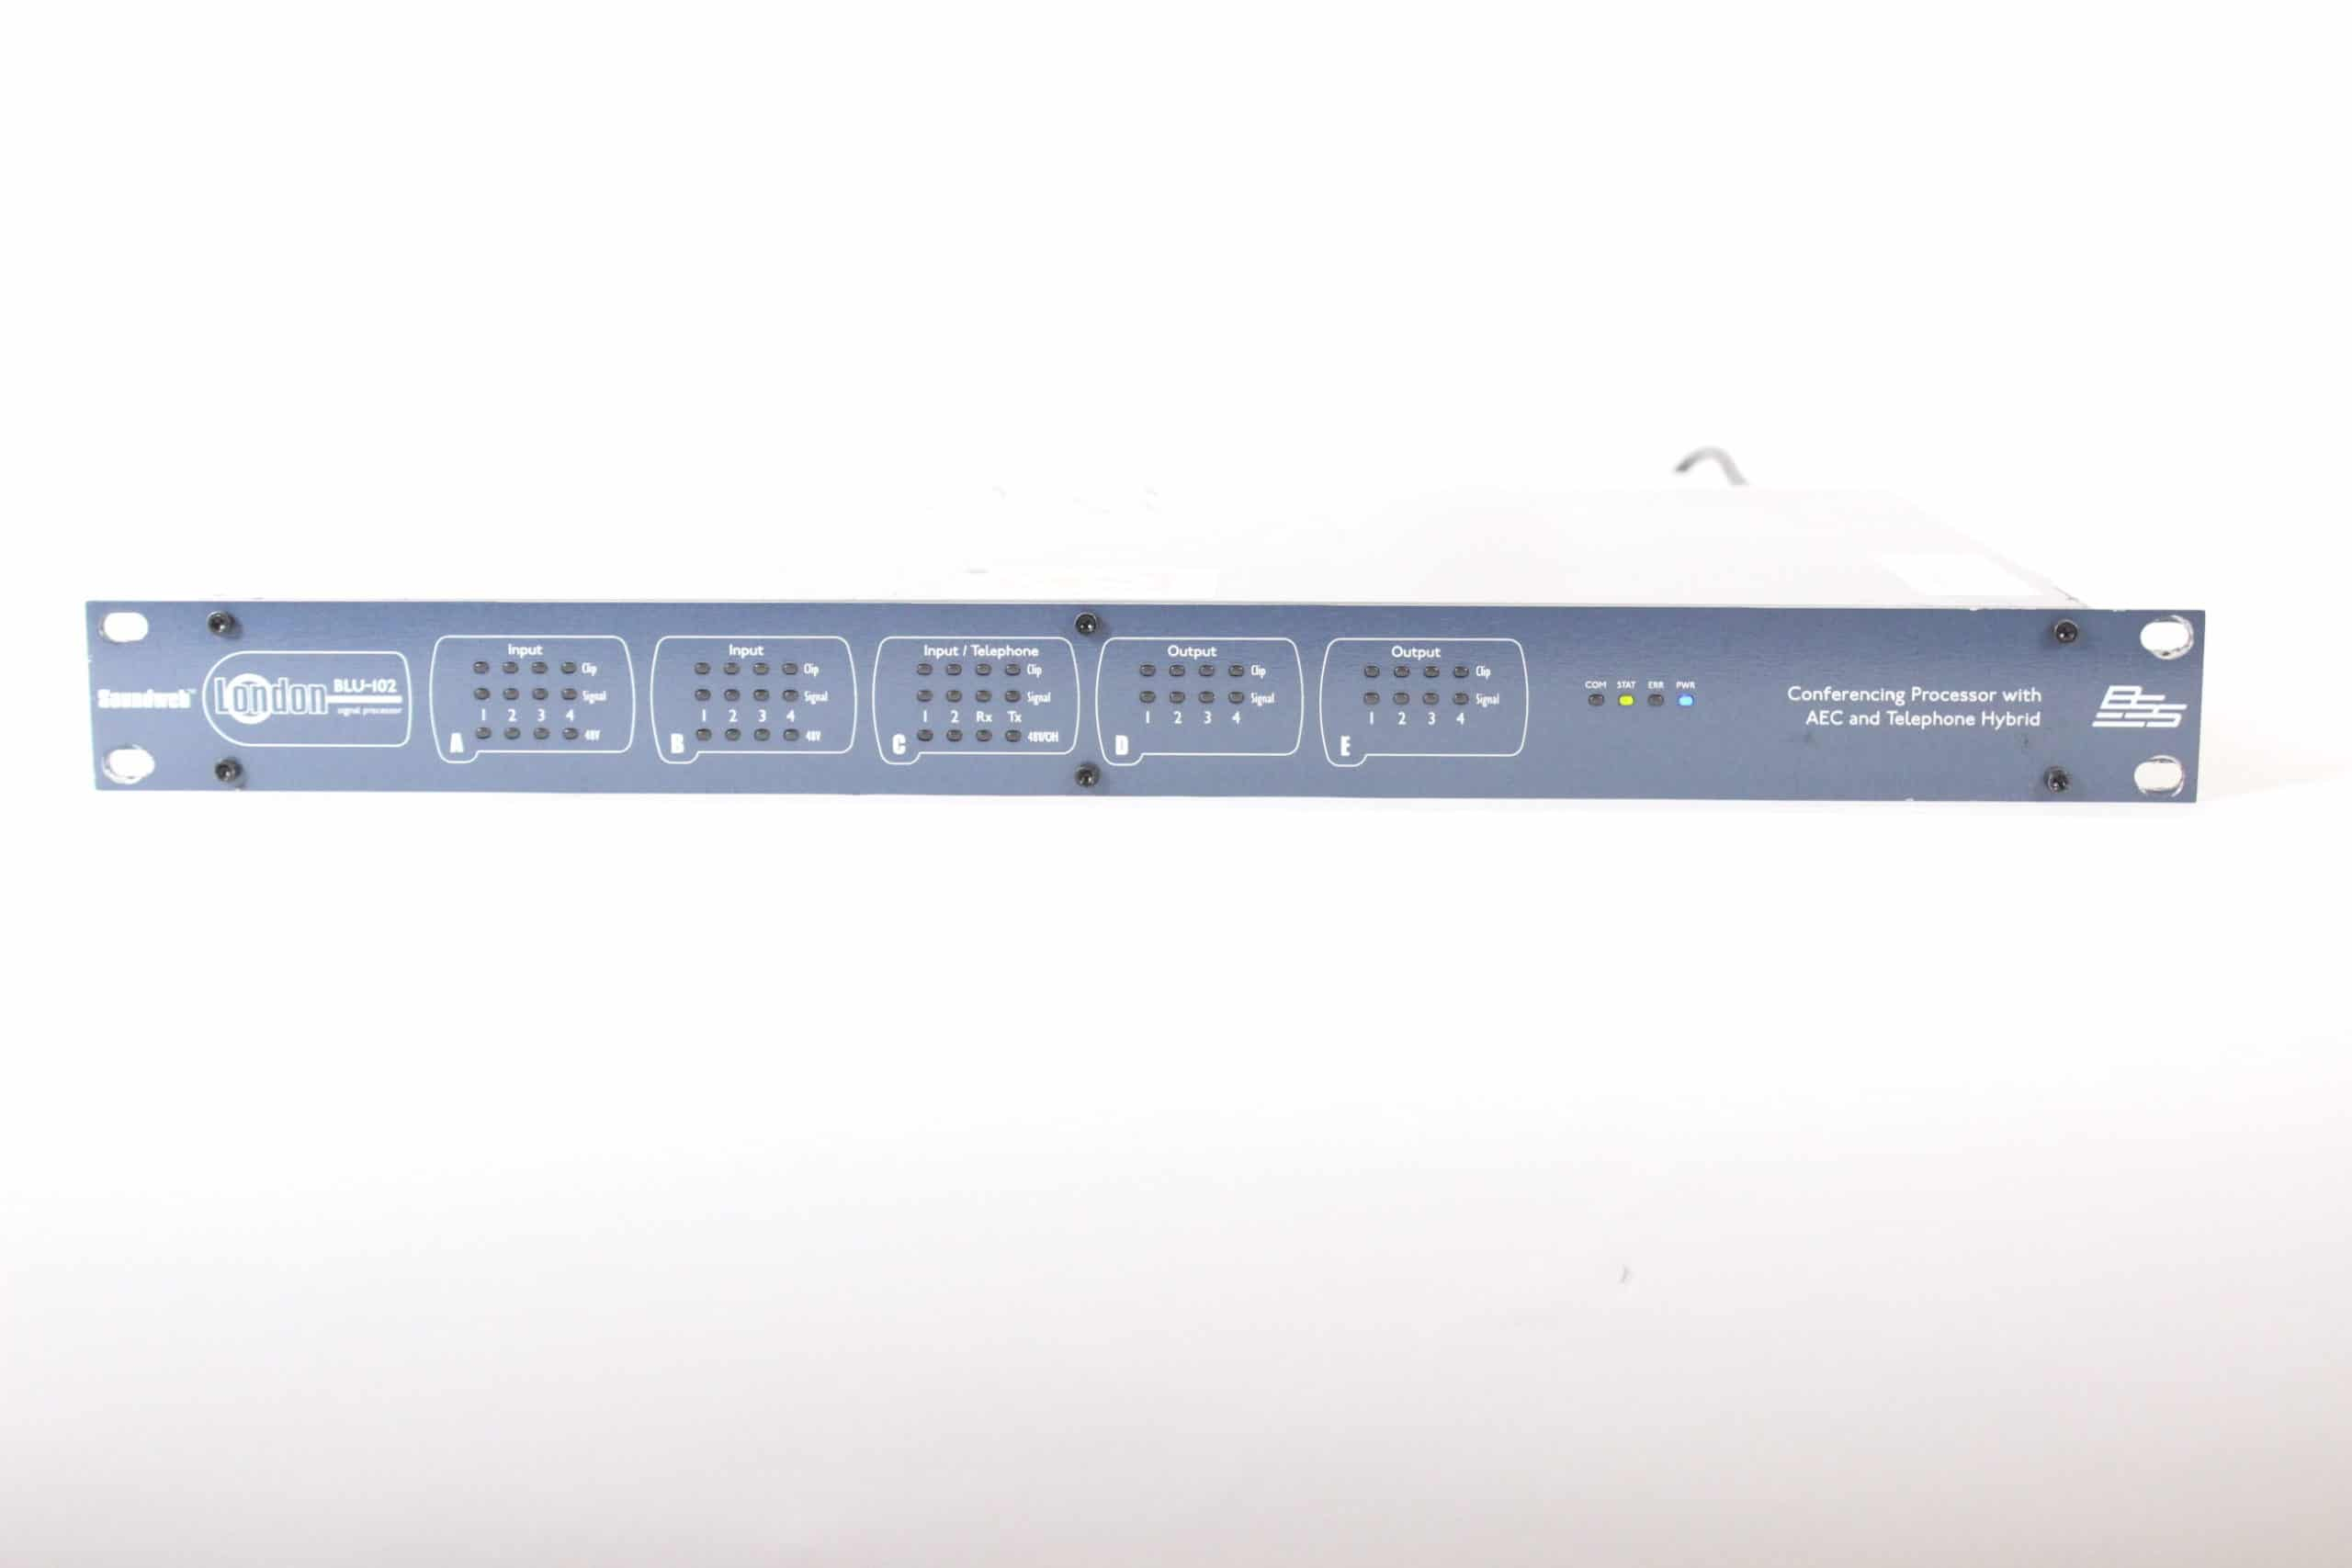 bss-soundweb-london-blu-102-conferencing-processor-w-aec-telephone-hybrid MAIN